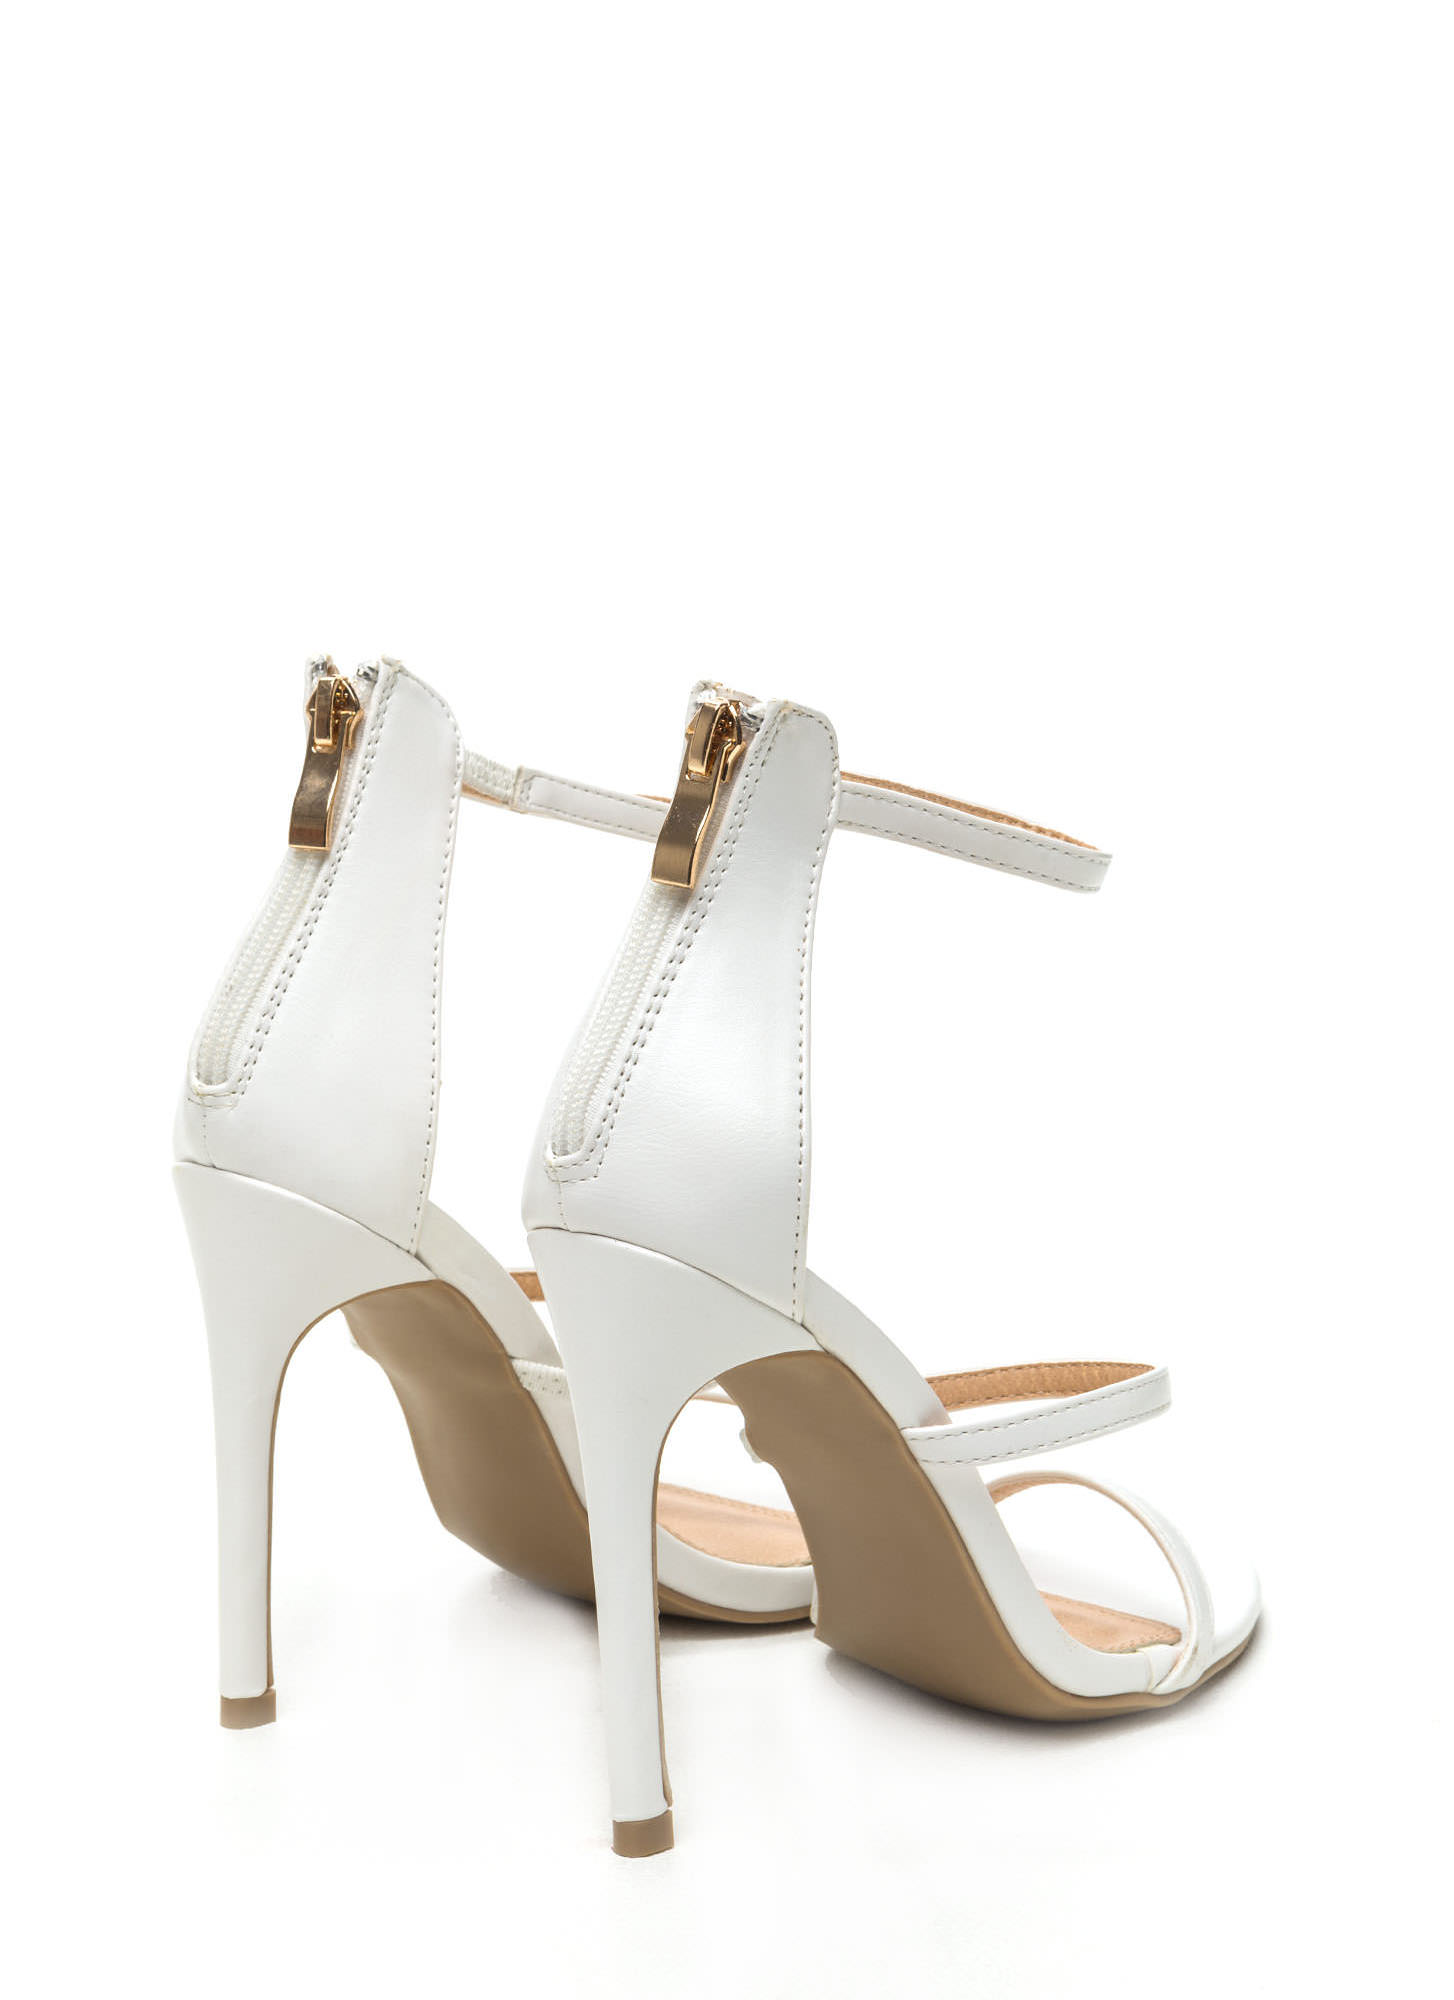 Strappy Life Single-Sole Heels WHITE